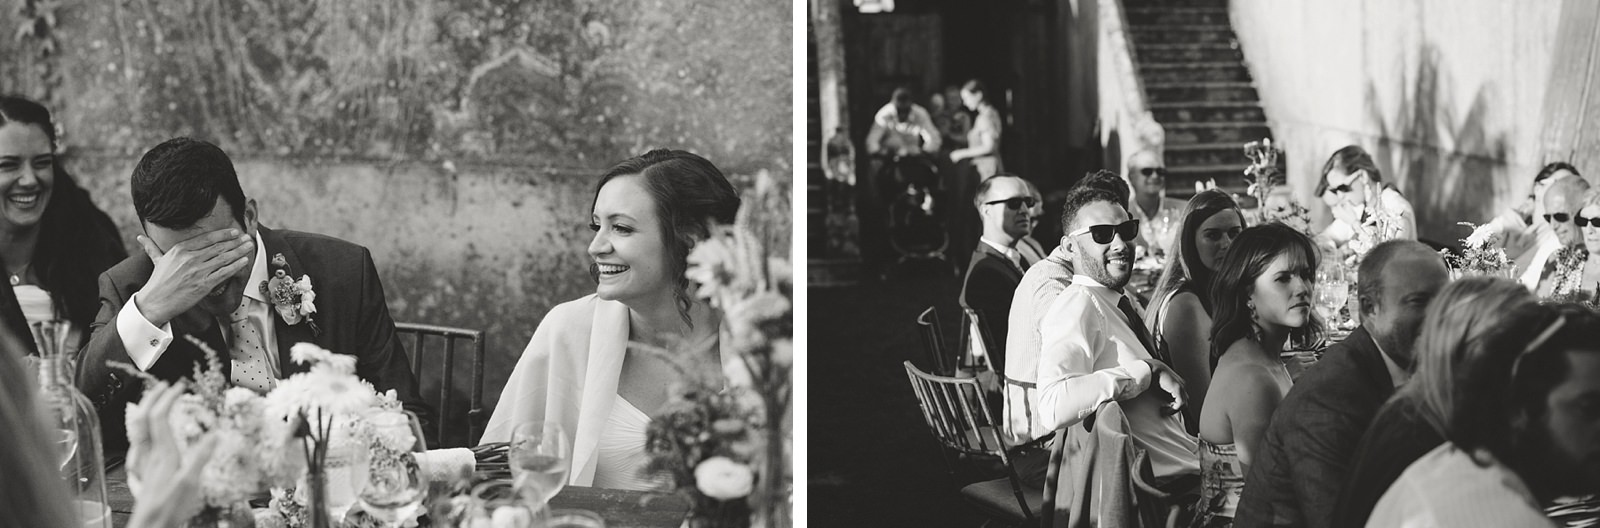 portugal-wedding-photography_0085